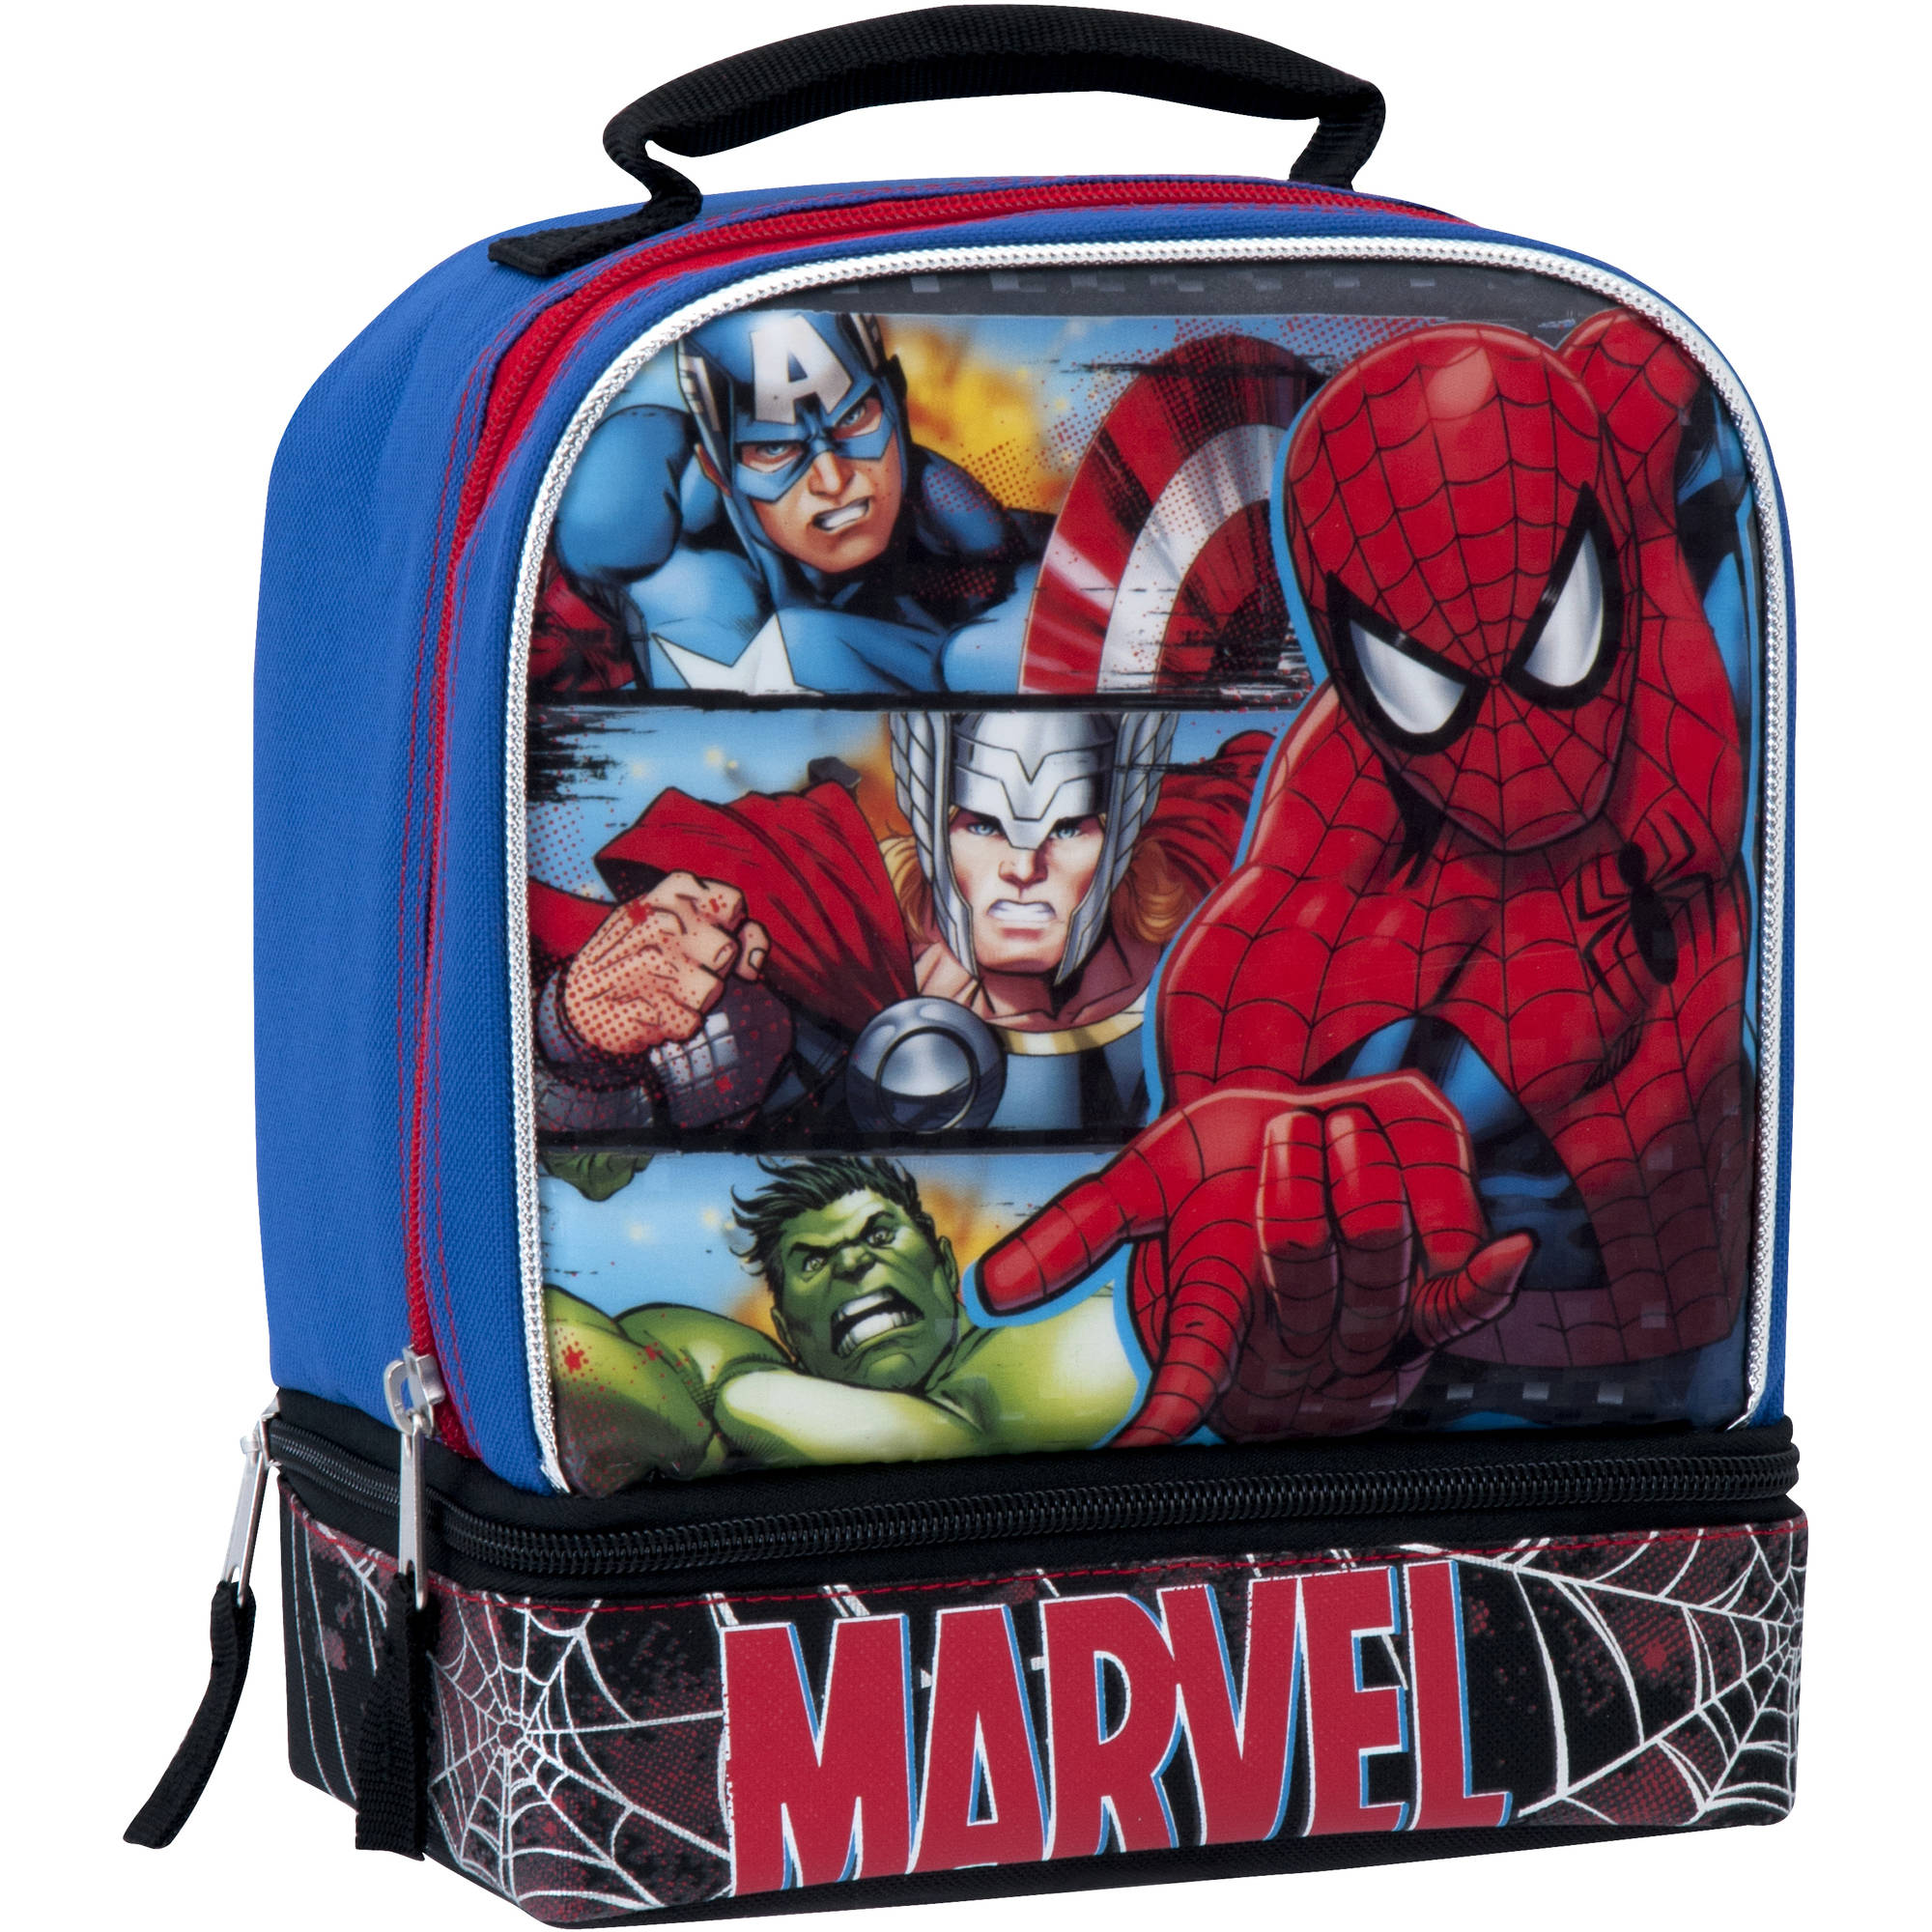 Marvel Universe Insulated Dual Compartment Lunch Bag